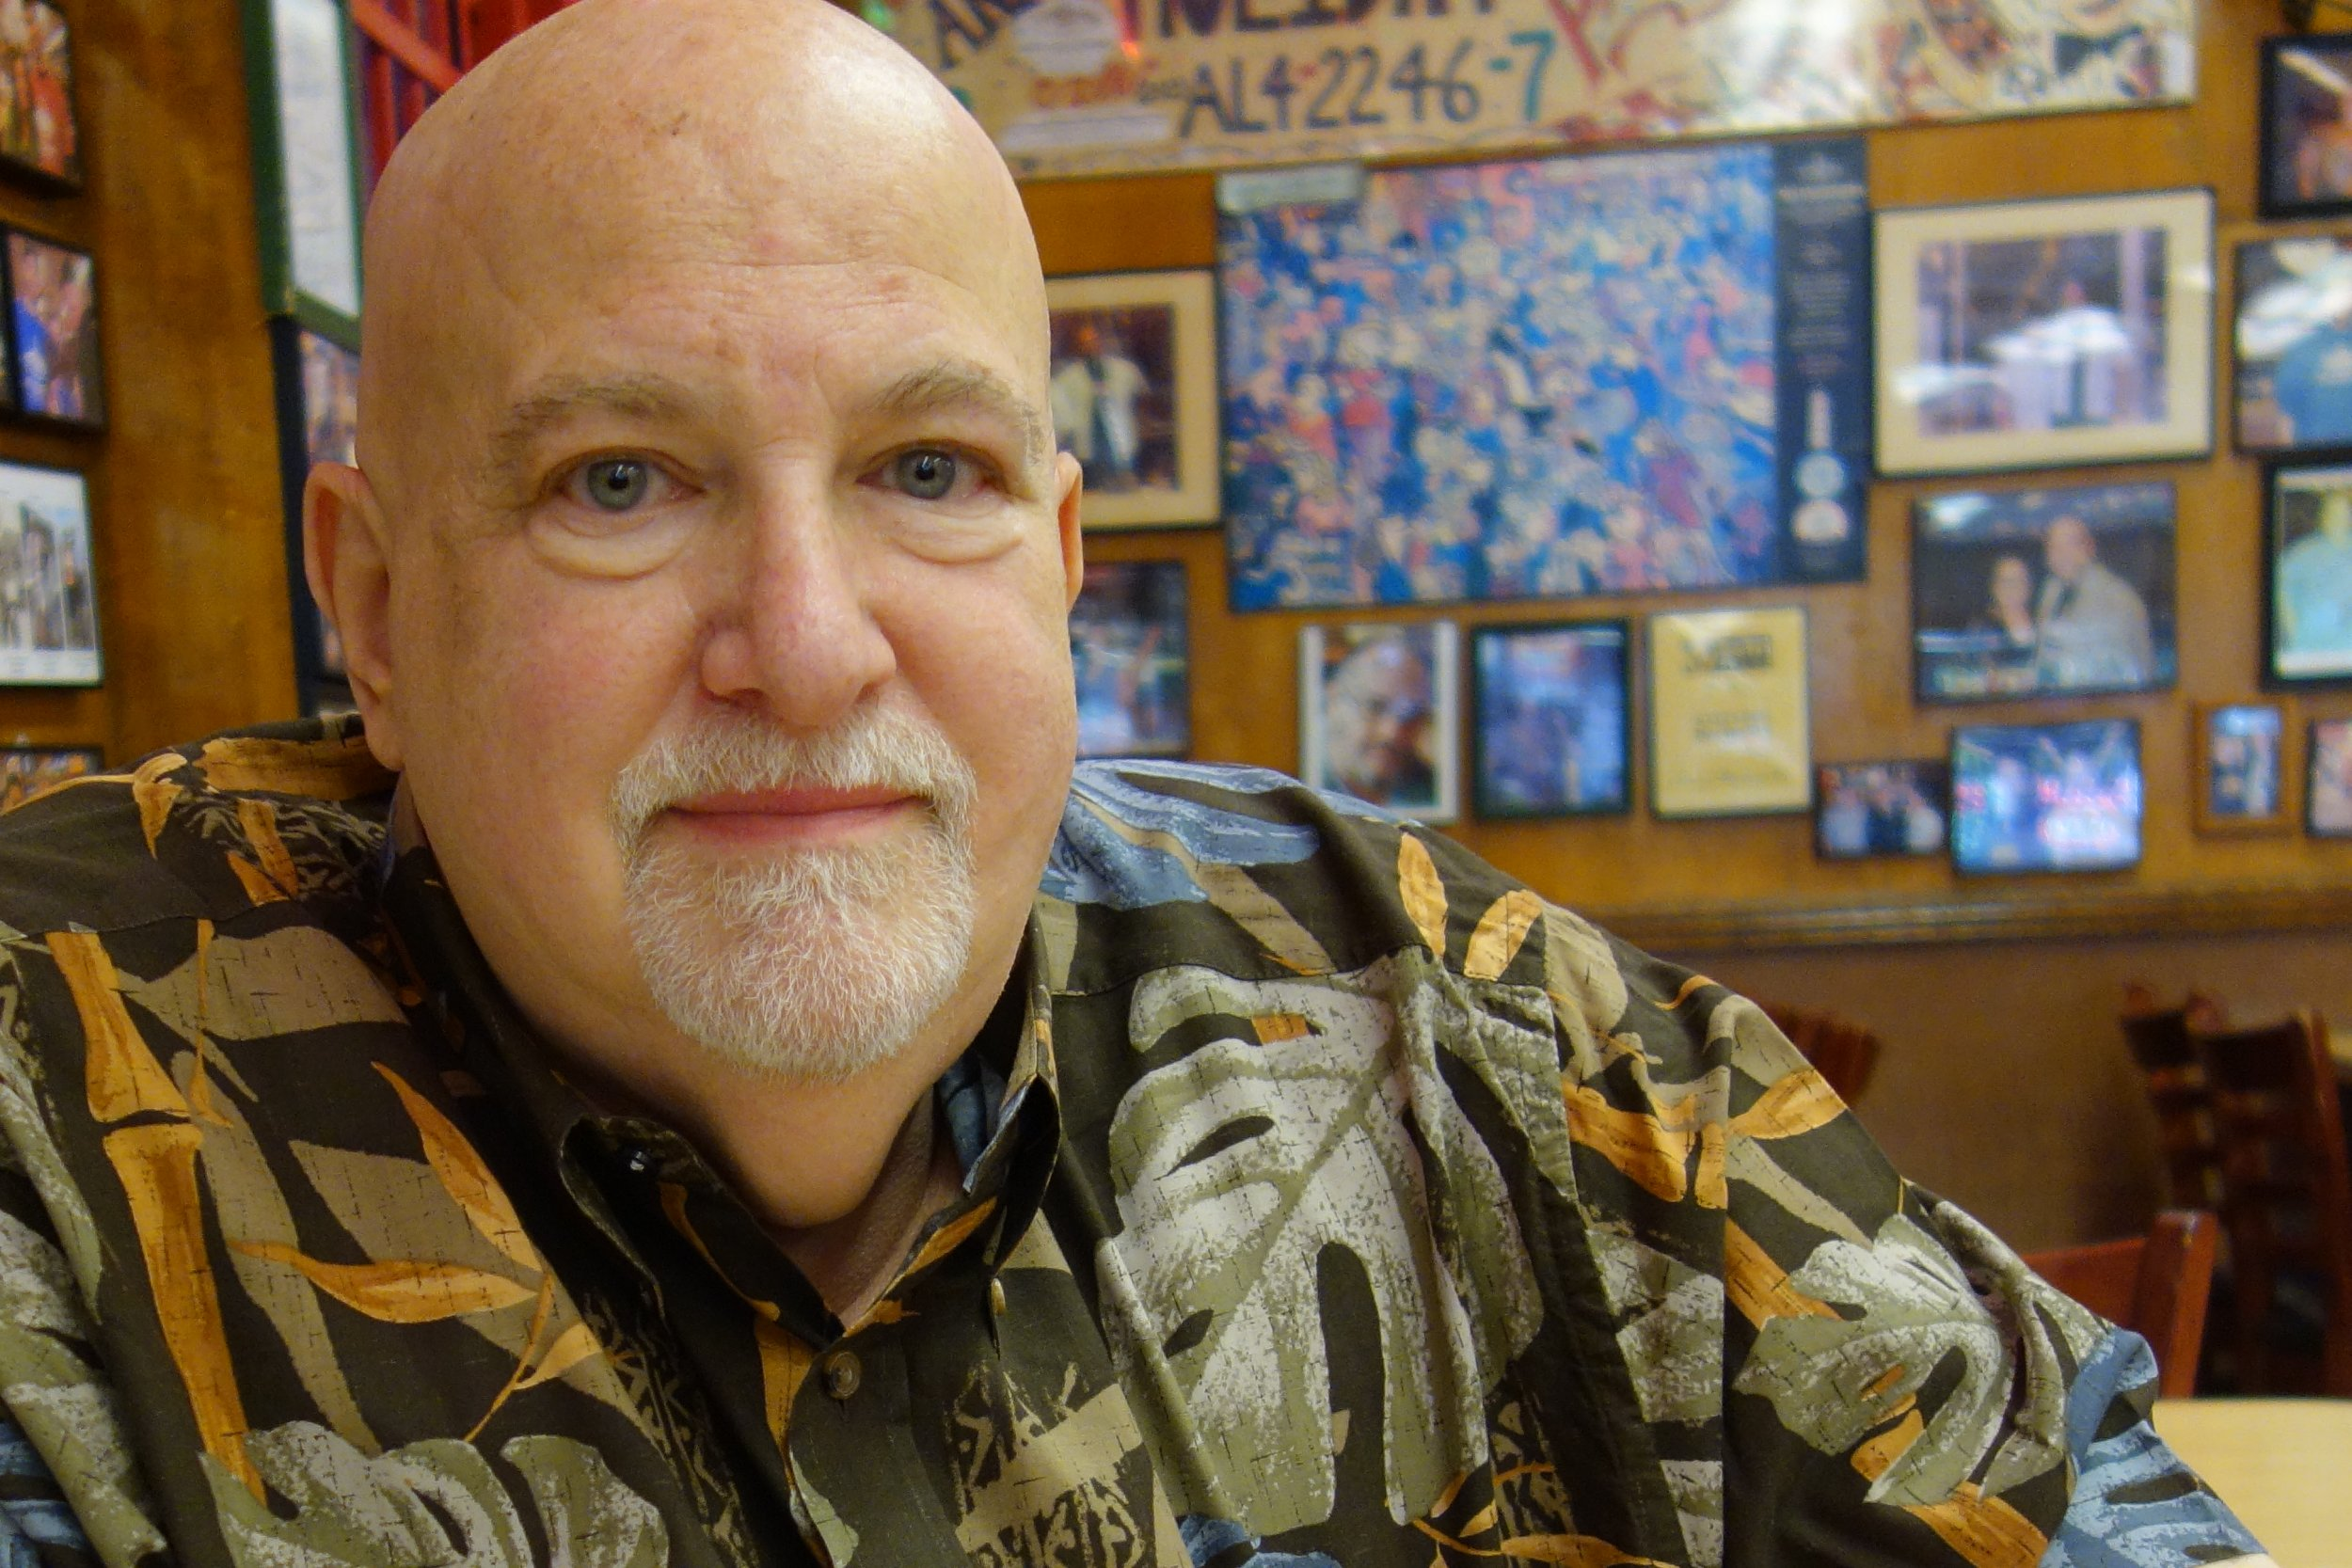 Fred Austin, who has co-owned Katz's Deli since 1988, enjoys an early breakfast on Saturday morning.